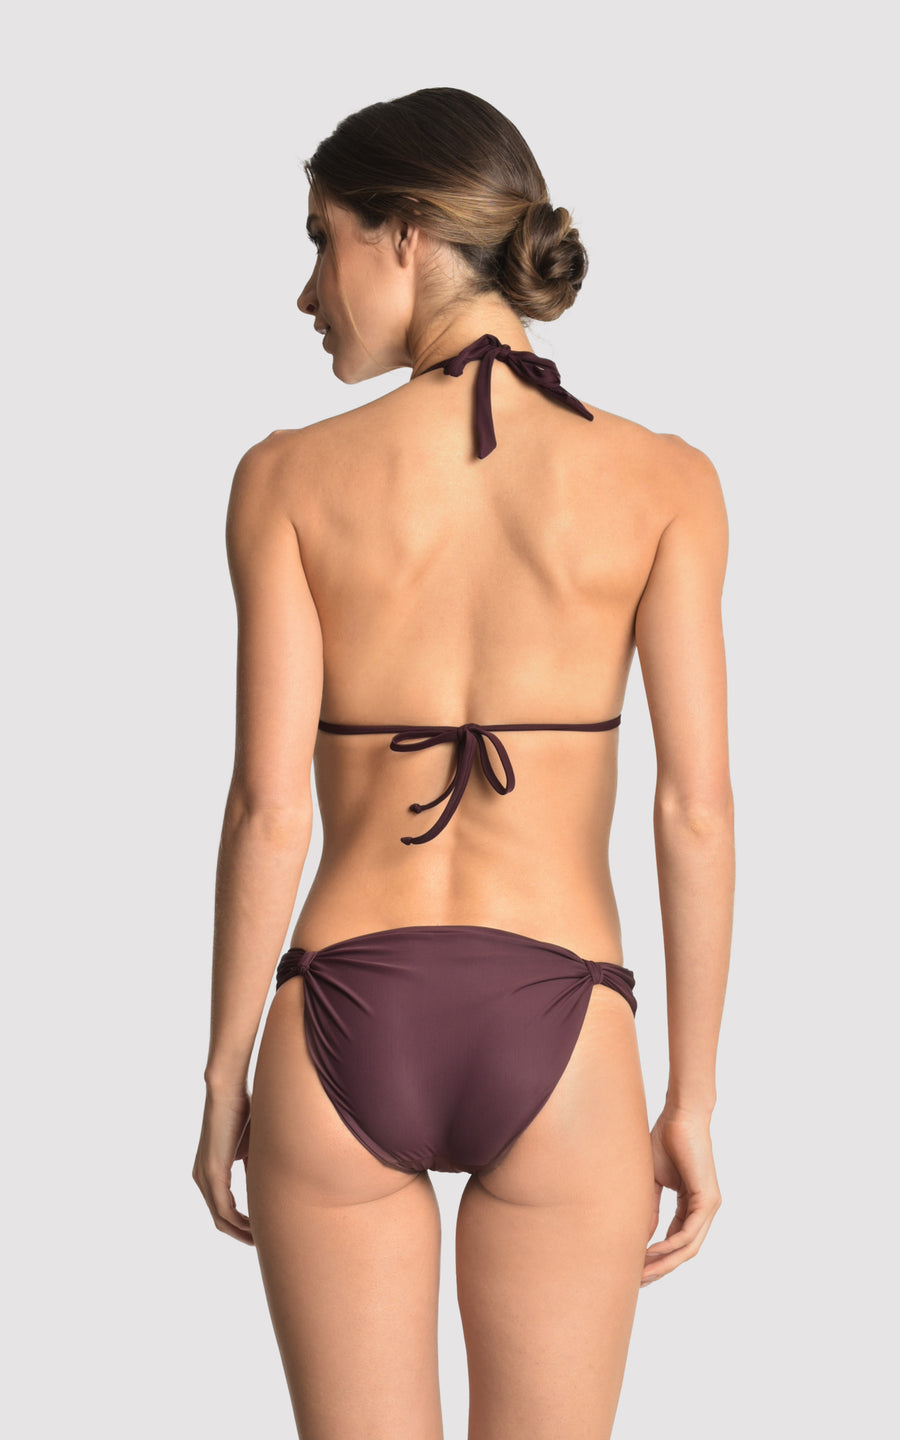 Eggplant Bikini Adjustable Accessory Bottom